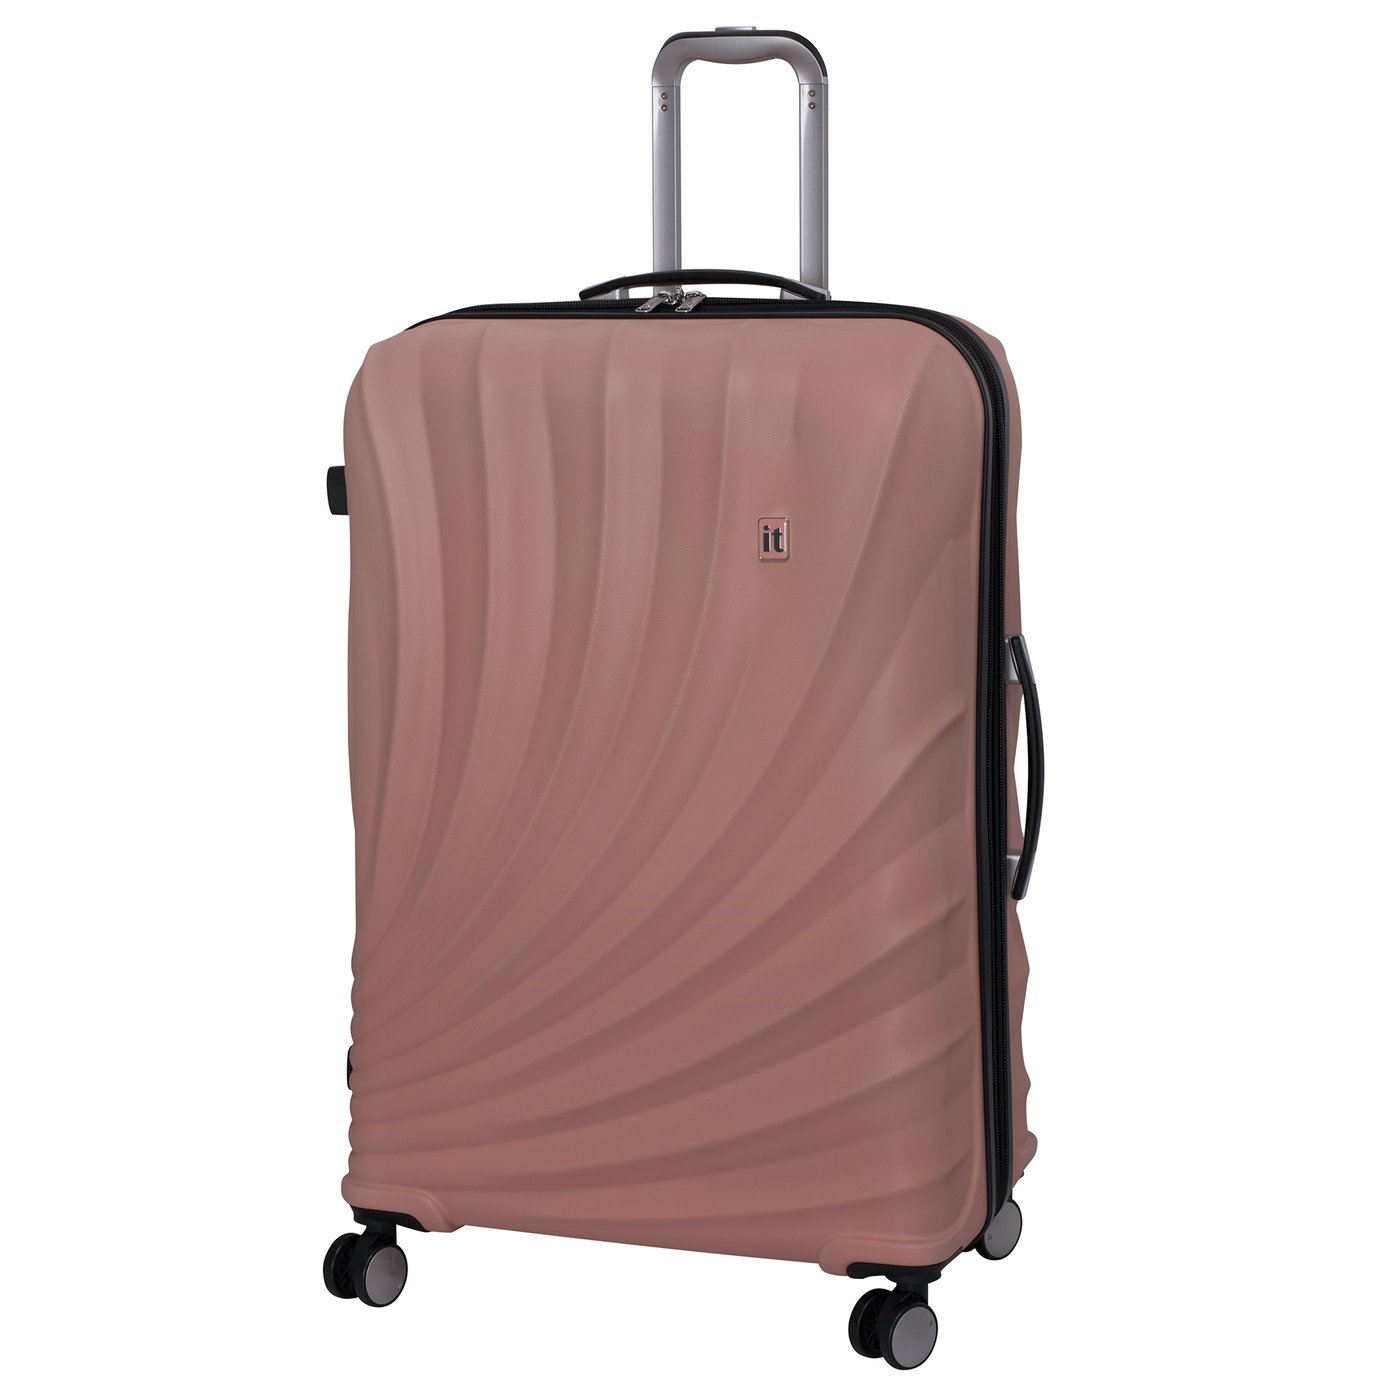 it Luggage Pagoda Large Expandable 8 Wheel Suitcase - Pink